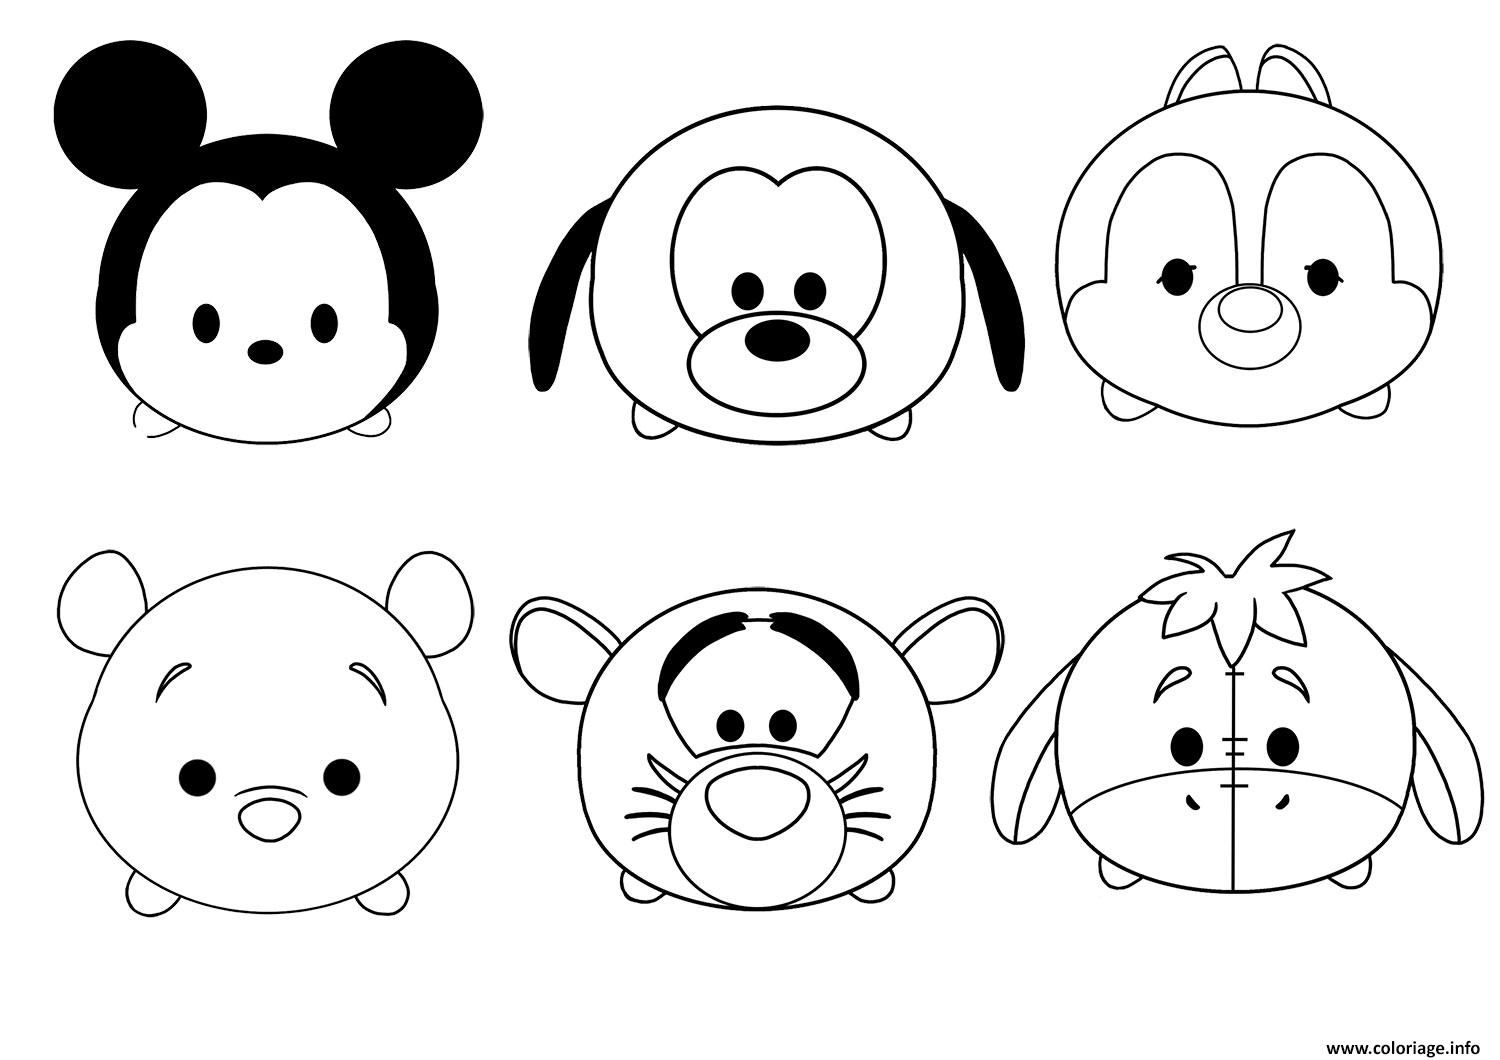 Coloriage tsum tsum disney facile enfant simple à imprimer